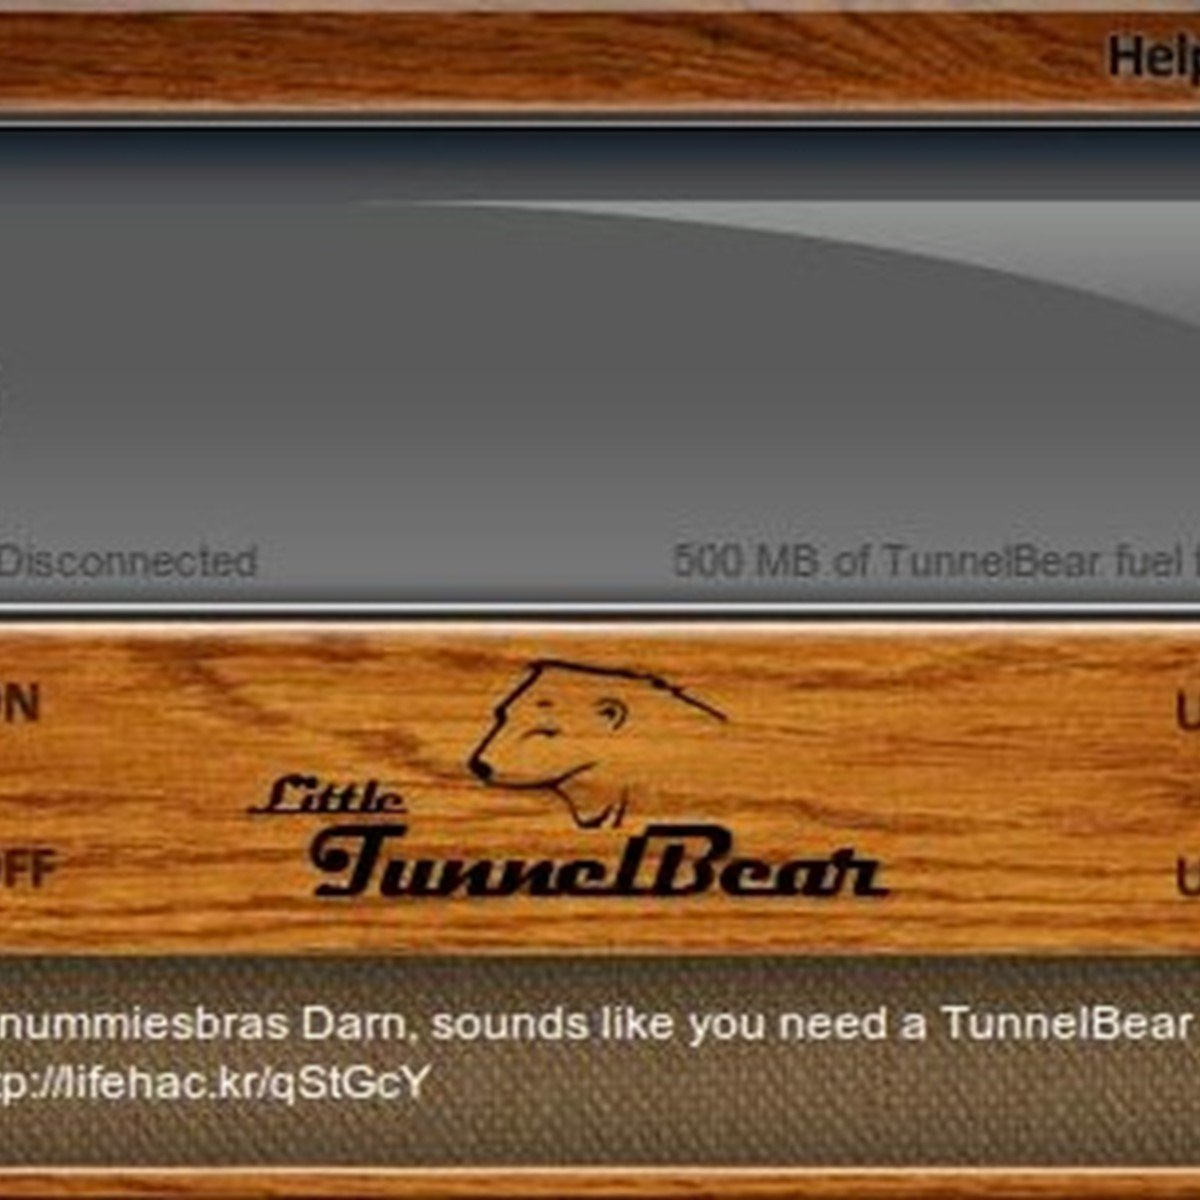 how to set up my own vpn like tunnelbear